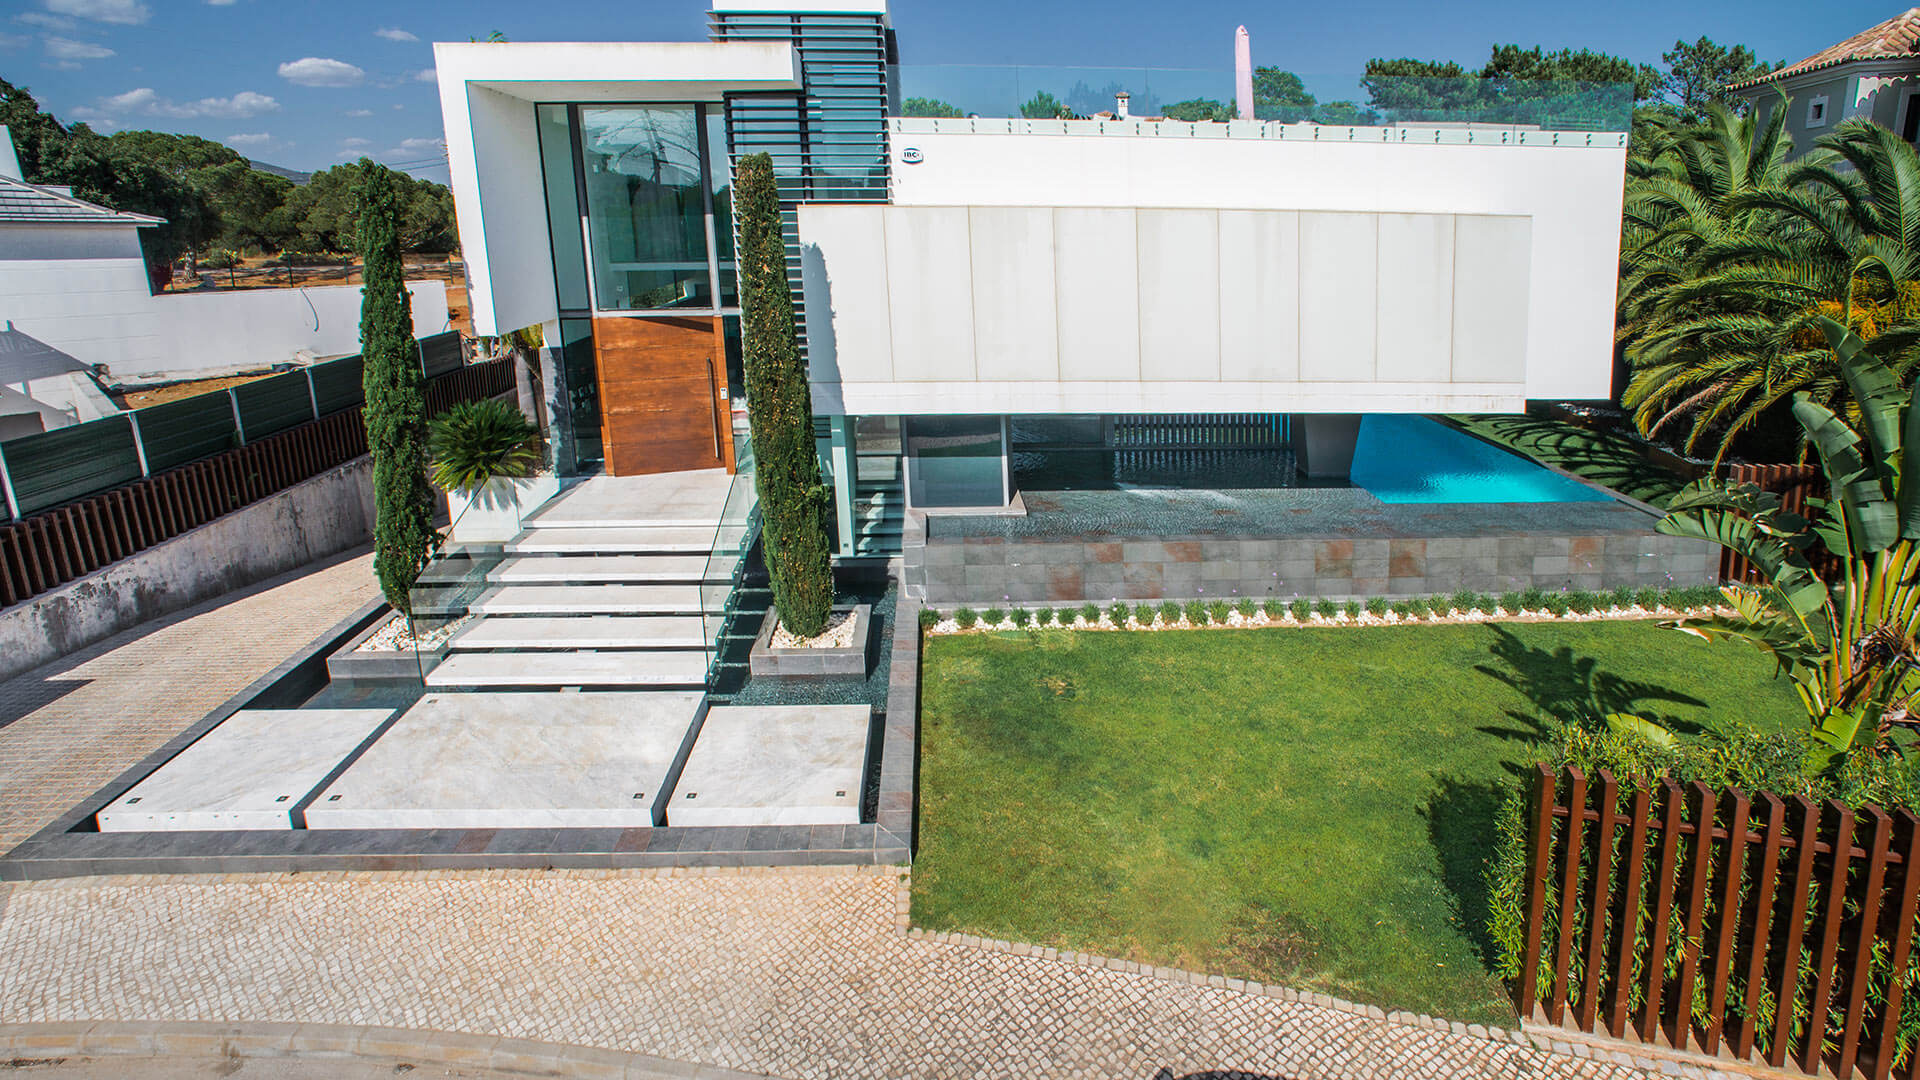 Villa Villa Opioma, Rental in Algarve